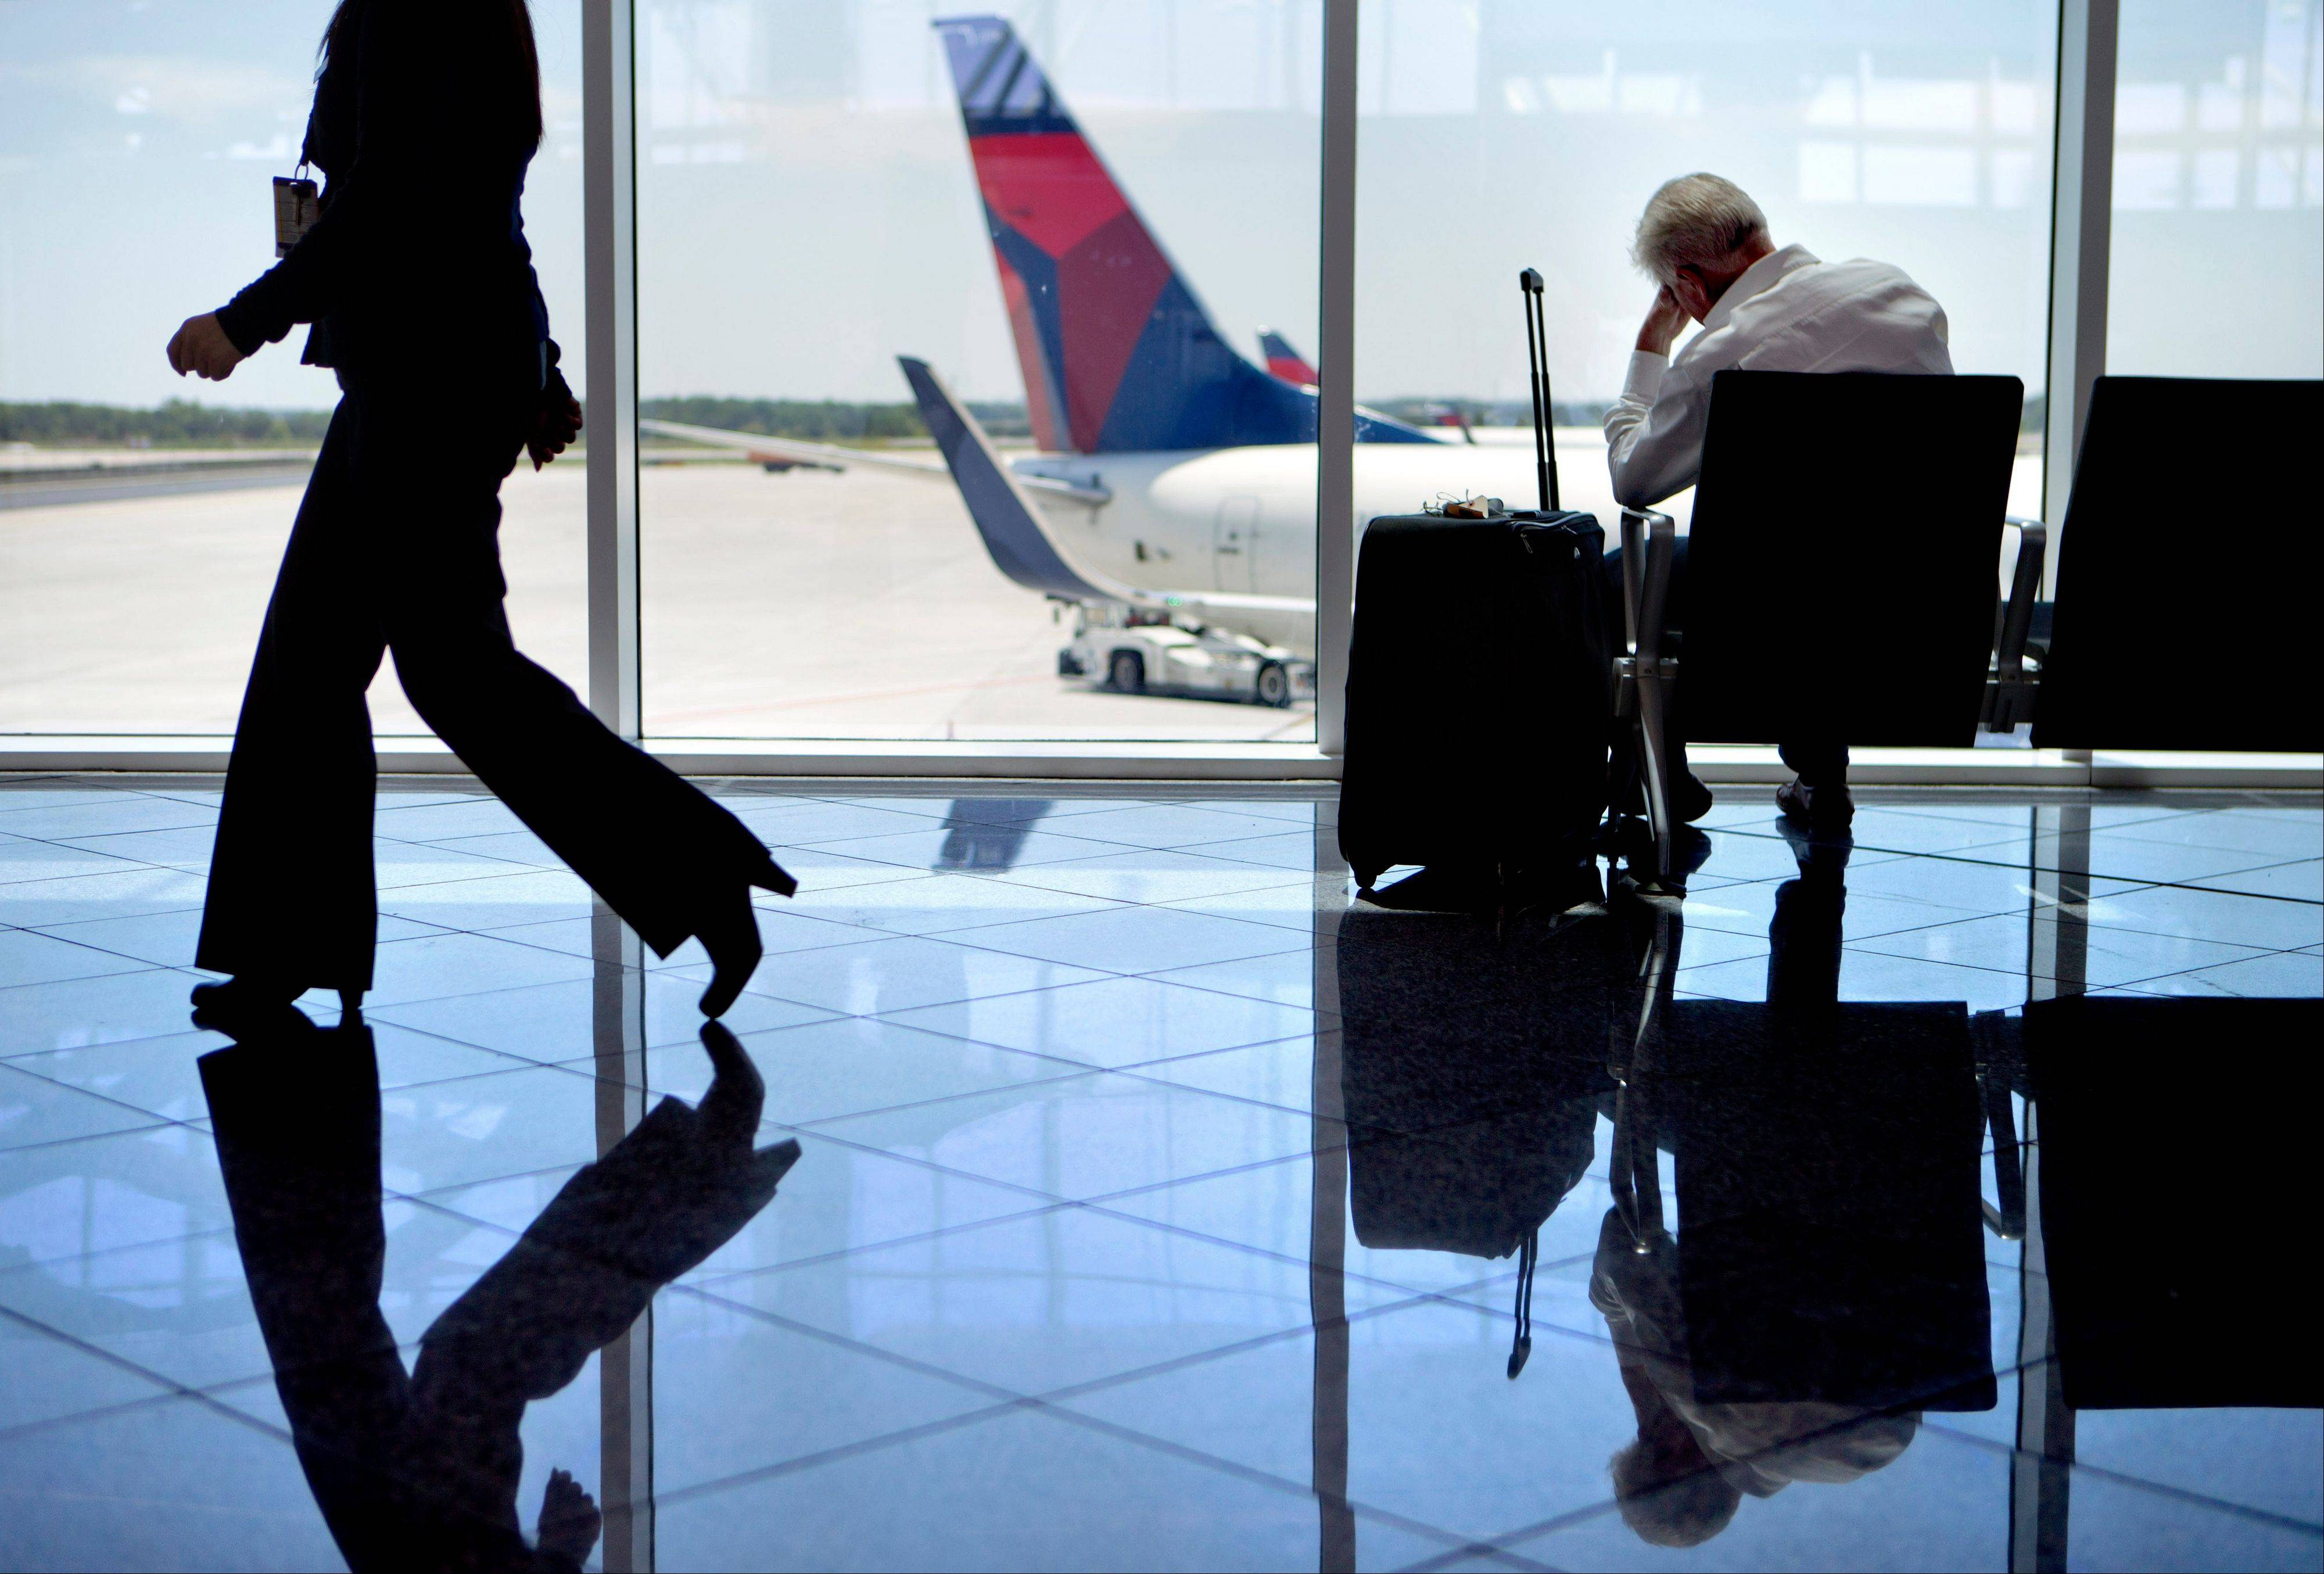 A passenger sits in the international terminal at Hartsfield-Jackson airport in Atlanta.